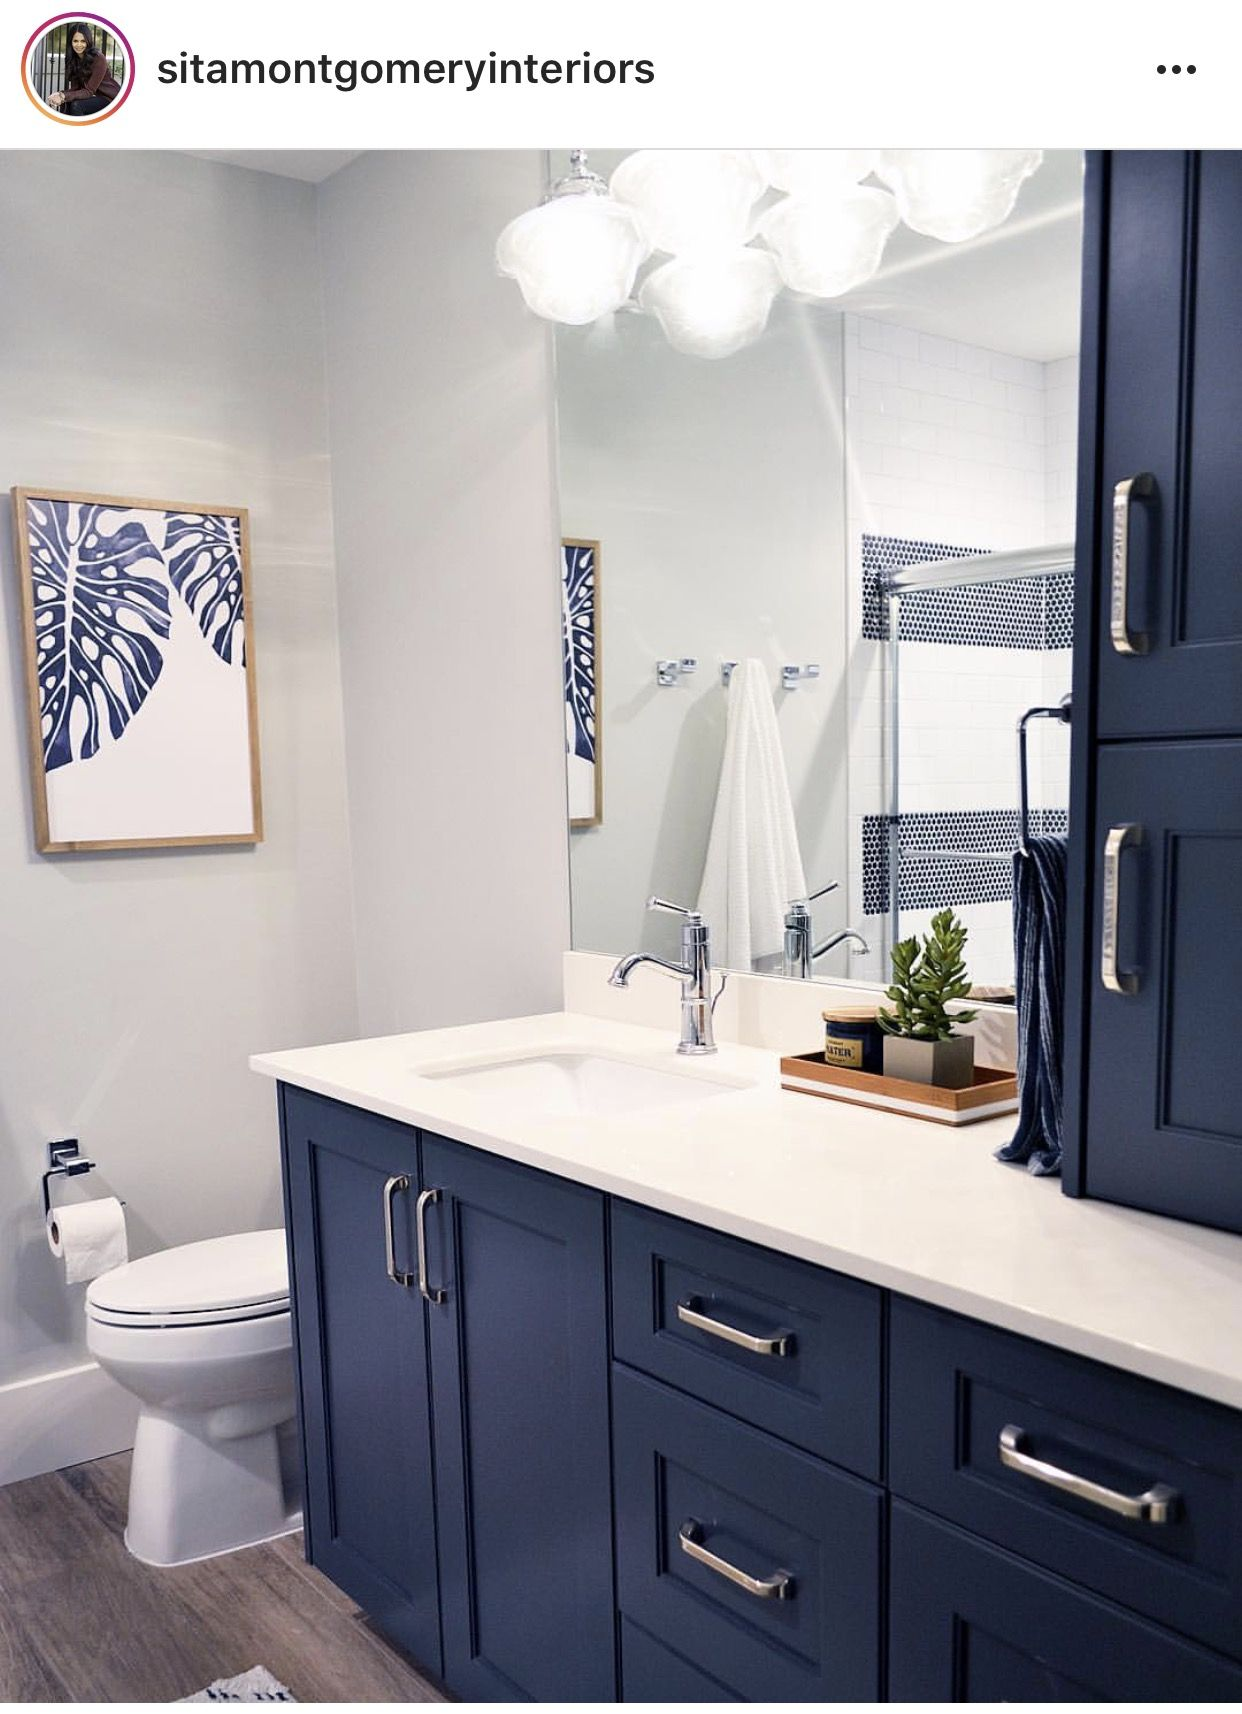 Hale Navy Grey Owl Benjamin Moore Blue Bathroom Decor Bathroom Interior Design Blue Bathroom